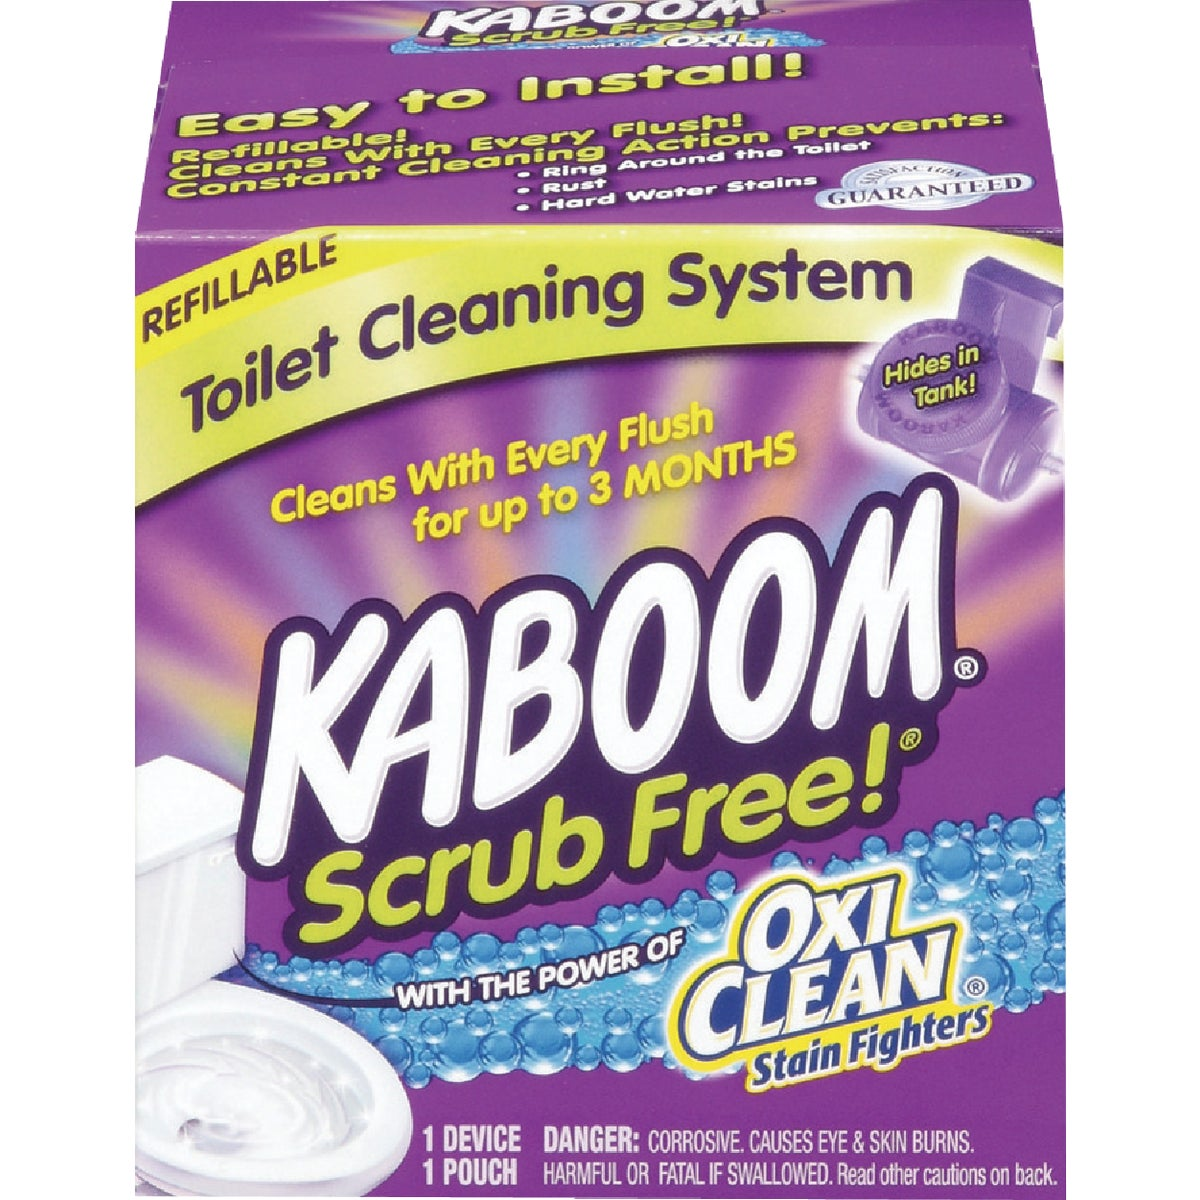 Toilet Cleaning System